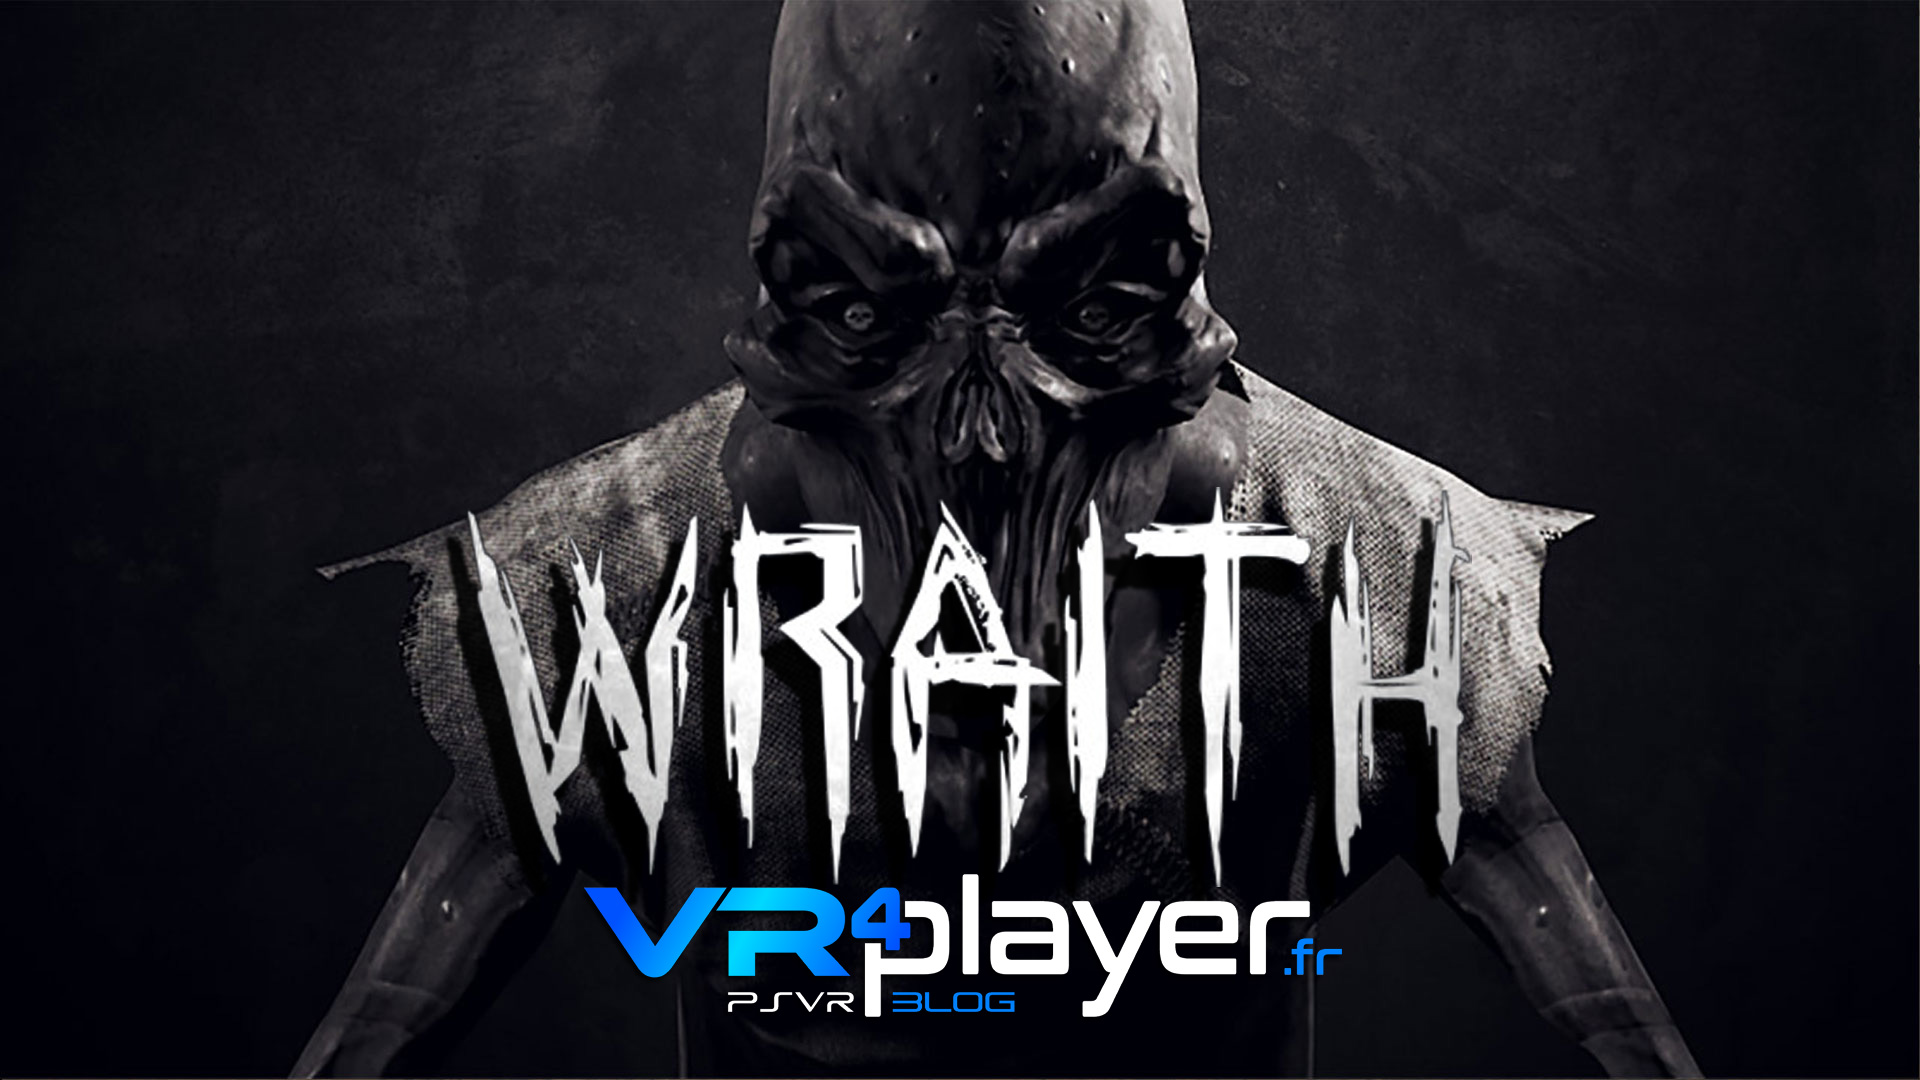 WRAITH le 29 mai sur PlayStation VR vr4player.fr